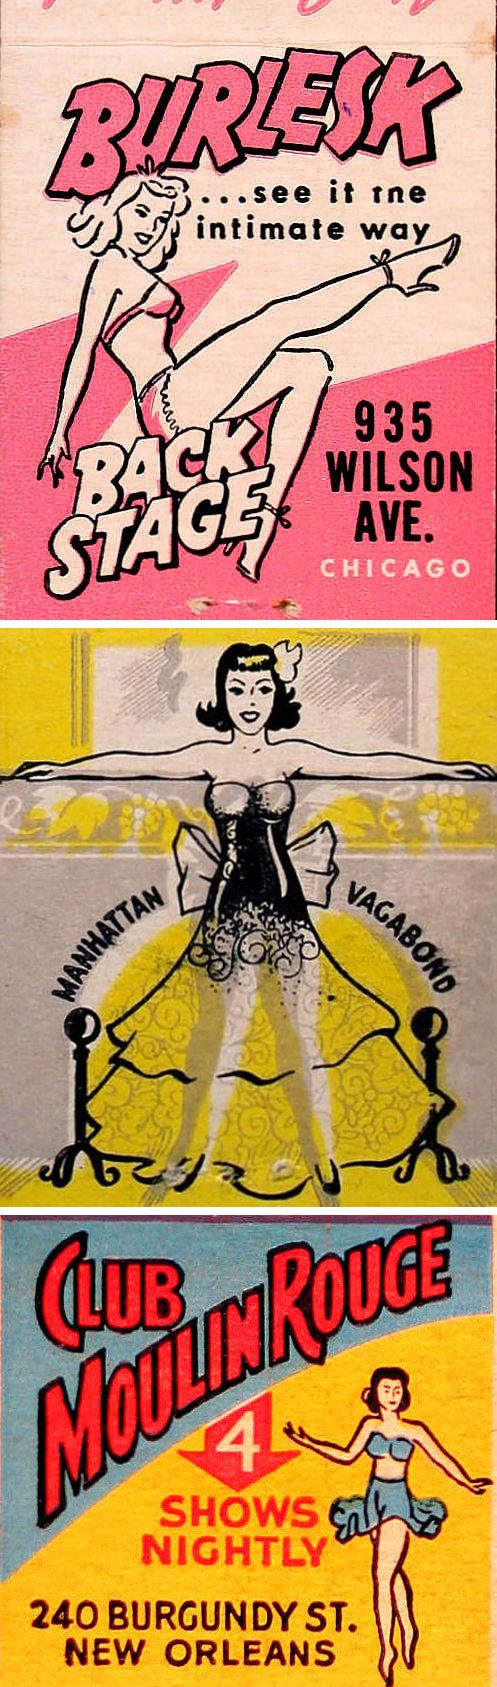 Vintage Burlesque Matchbook Covers...having vintage-style matches to give away is a great idea!